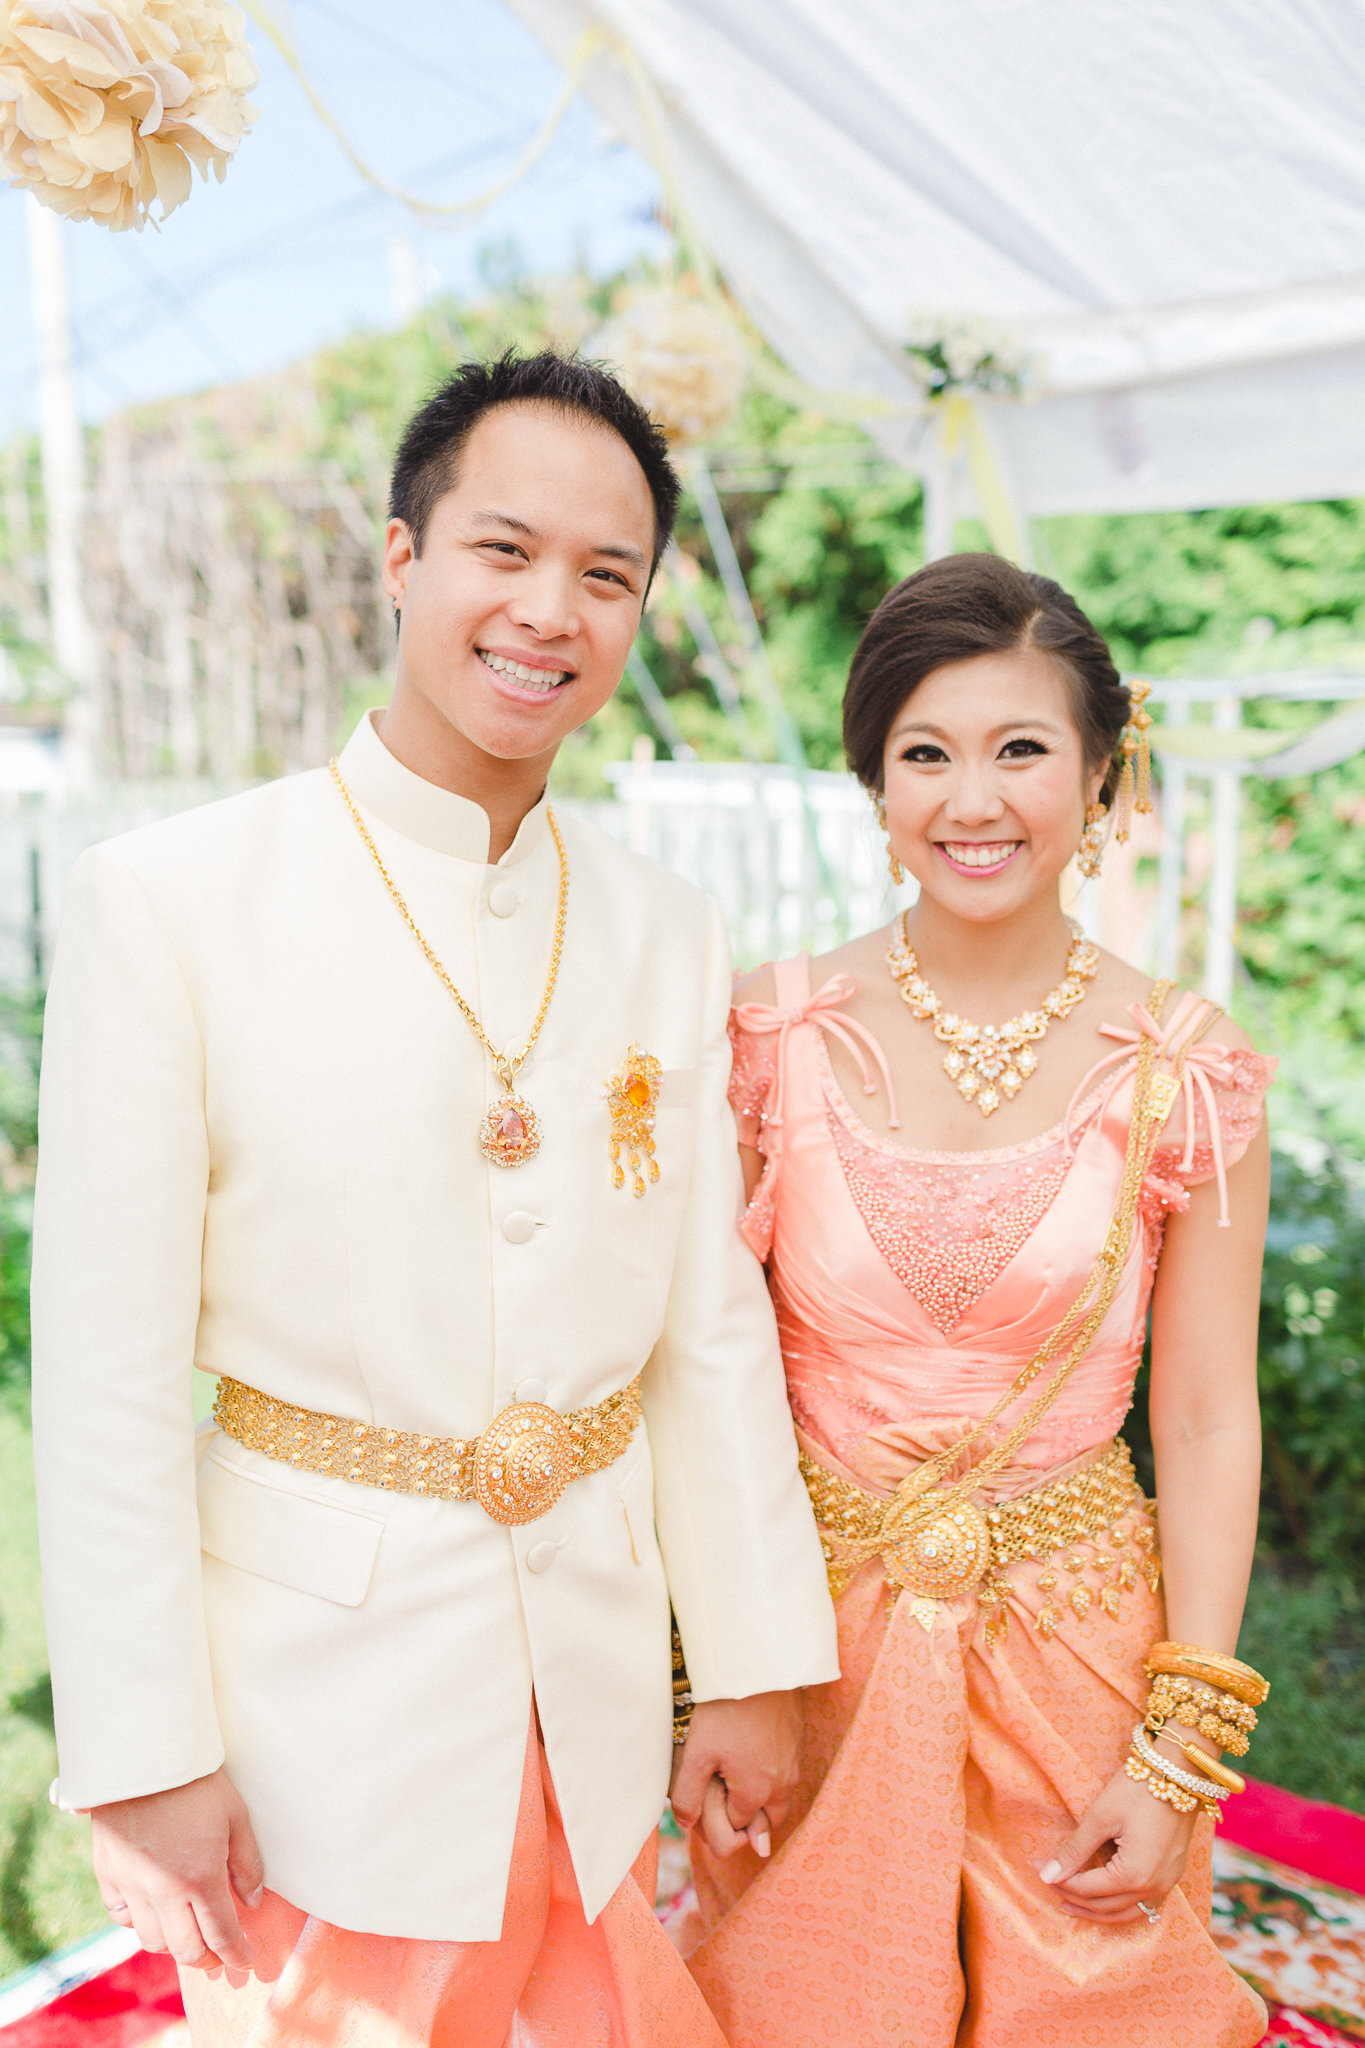 photographe-montreal-mariage-culturel-traditionnel-cambodgien-lisa-renault-photographie-traditional-cultural-cambodian-wedding-39